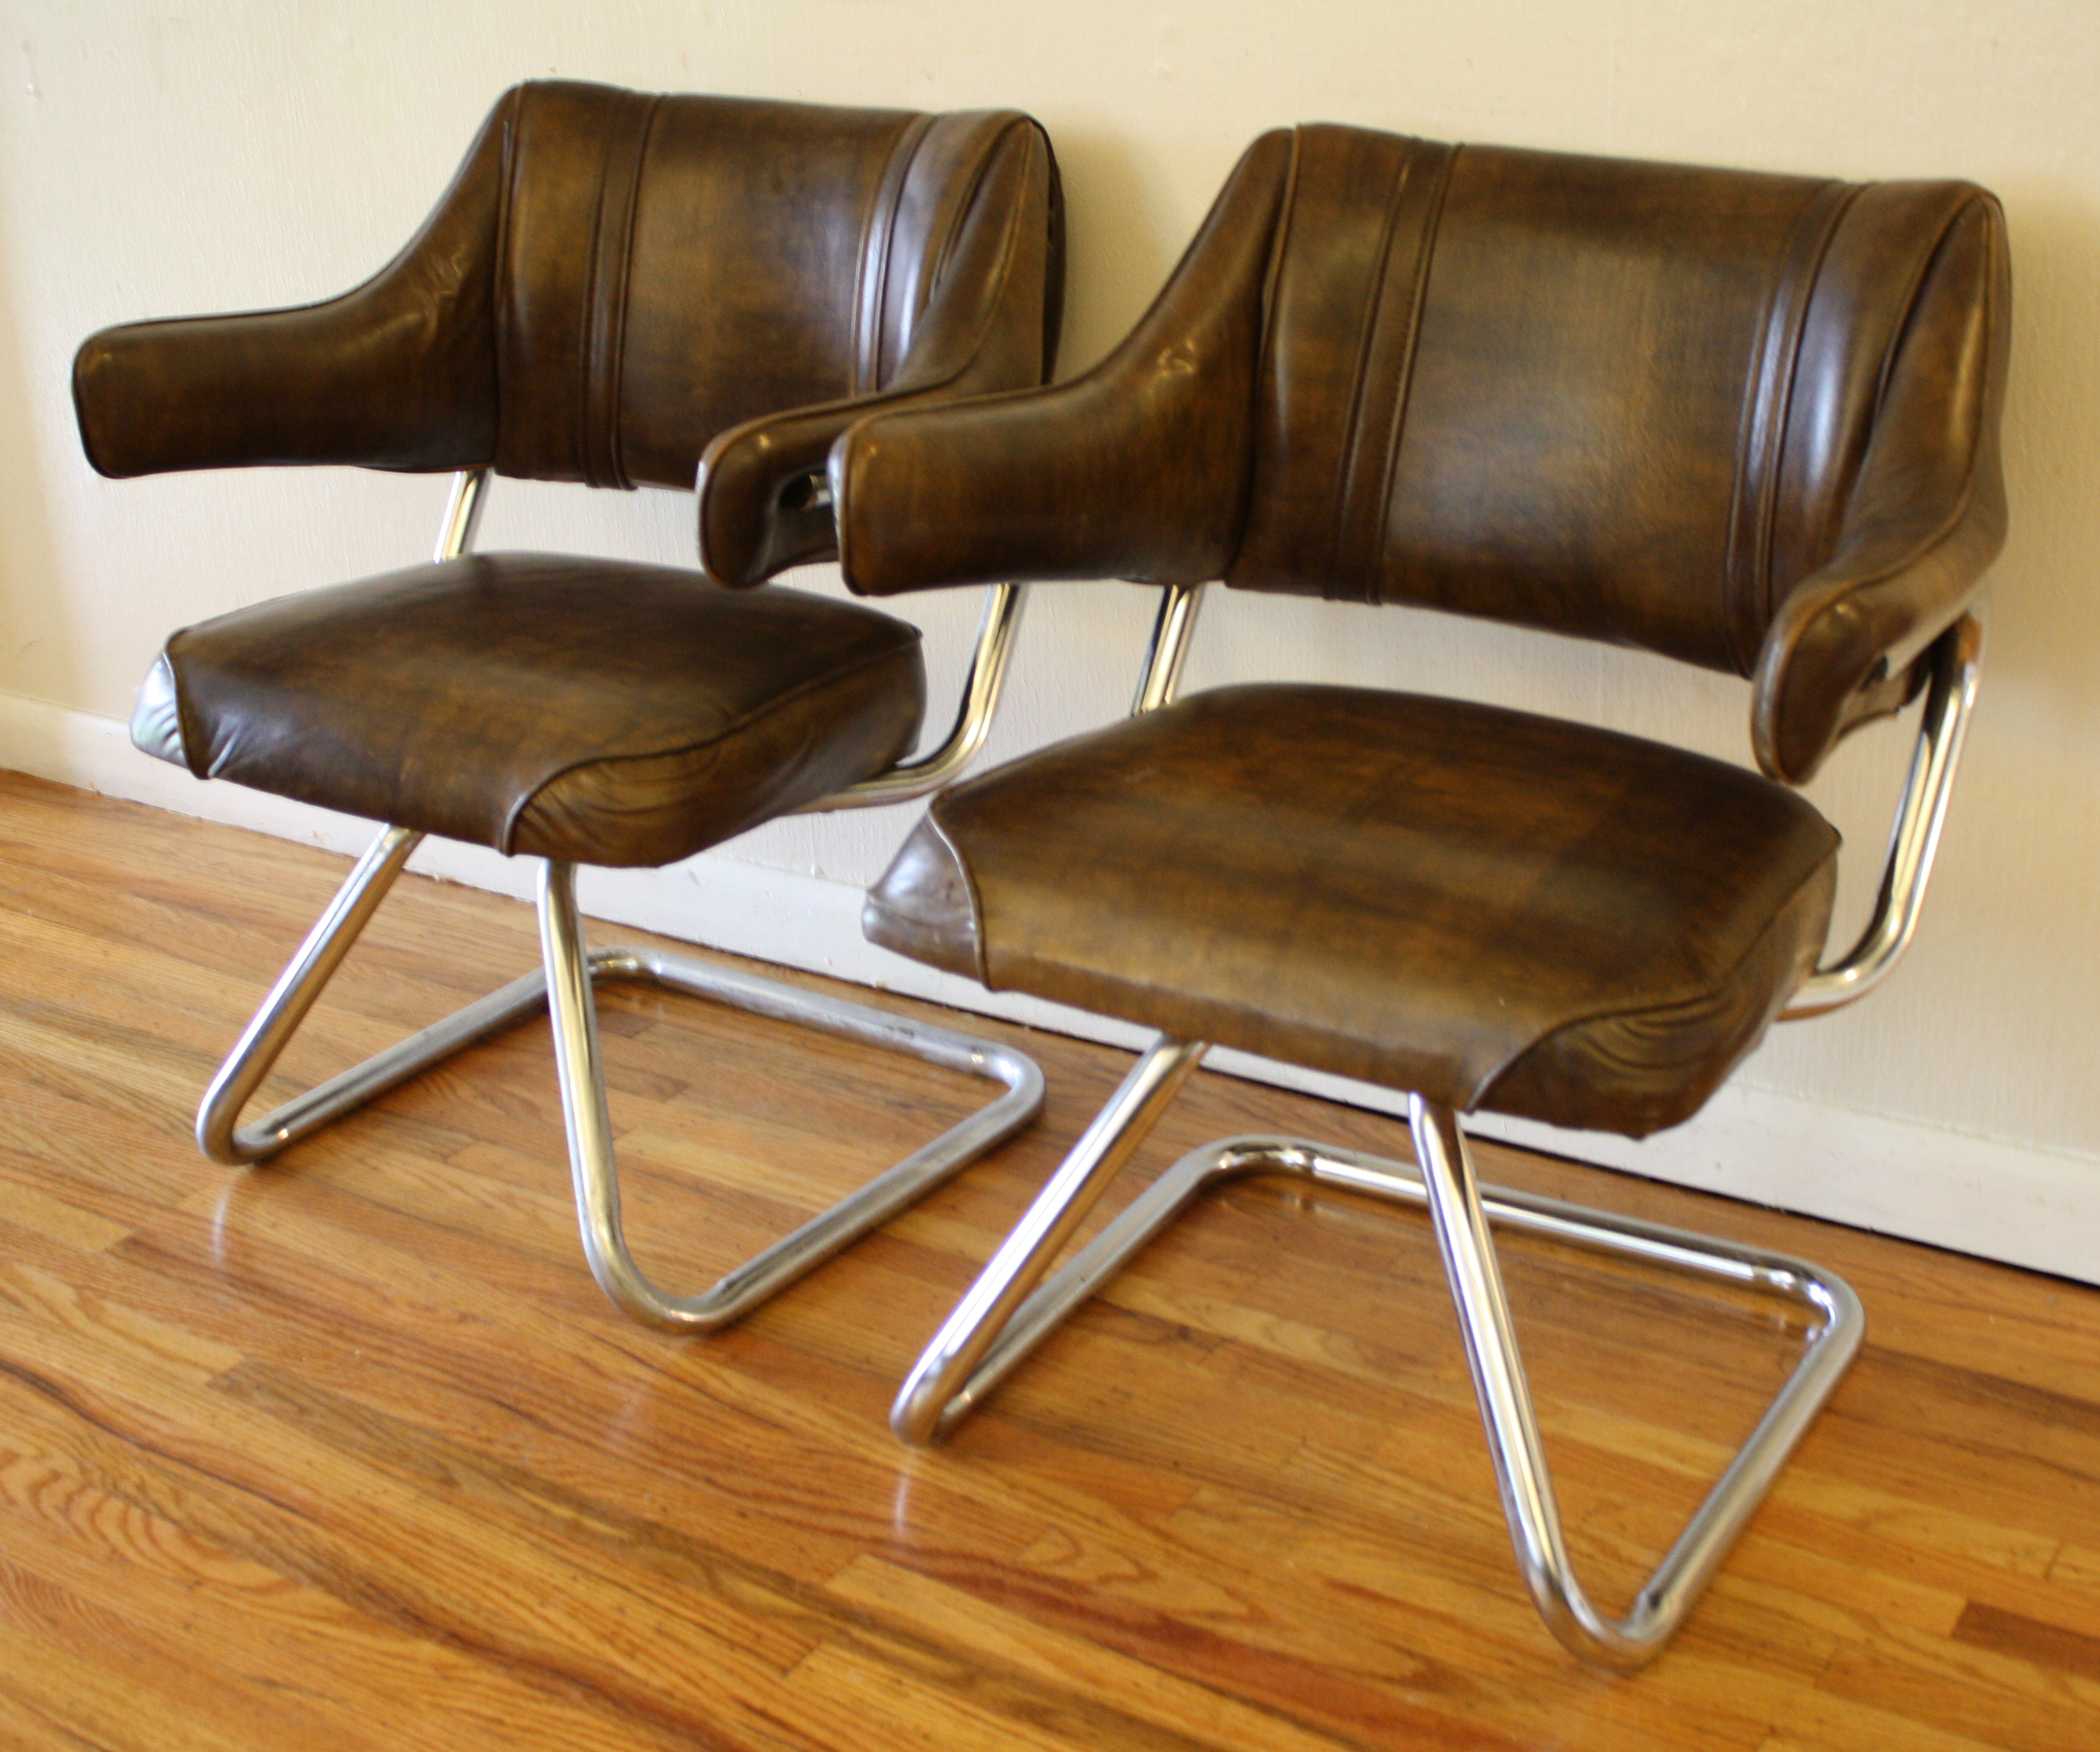 retro chrome chairs hanging chair olx 1 picked vintage